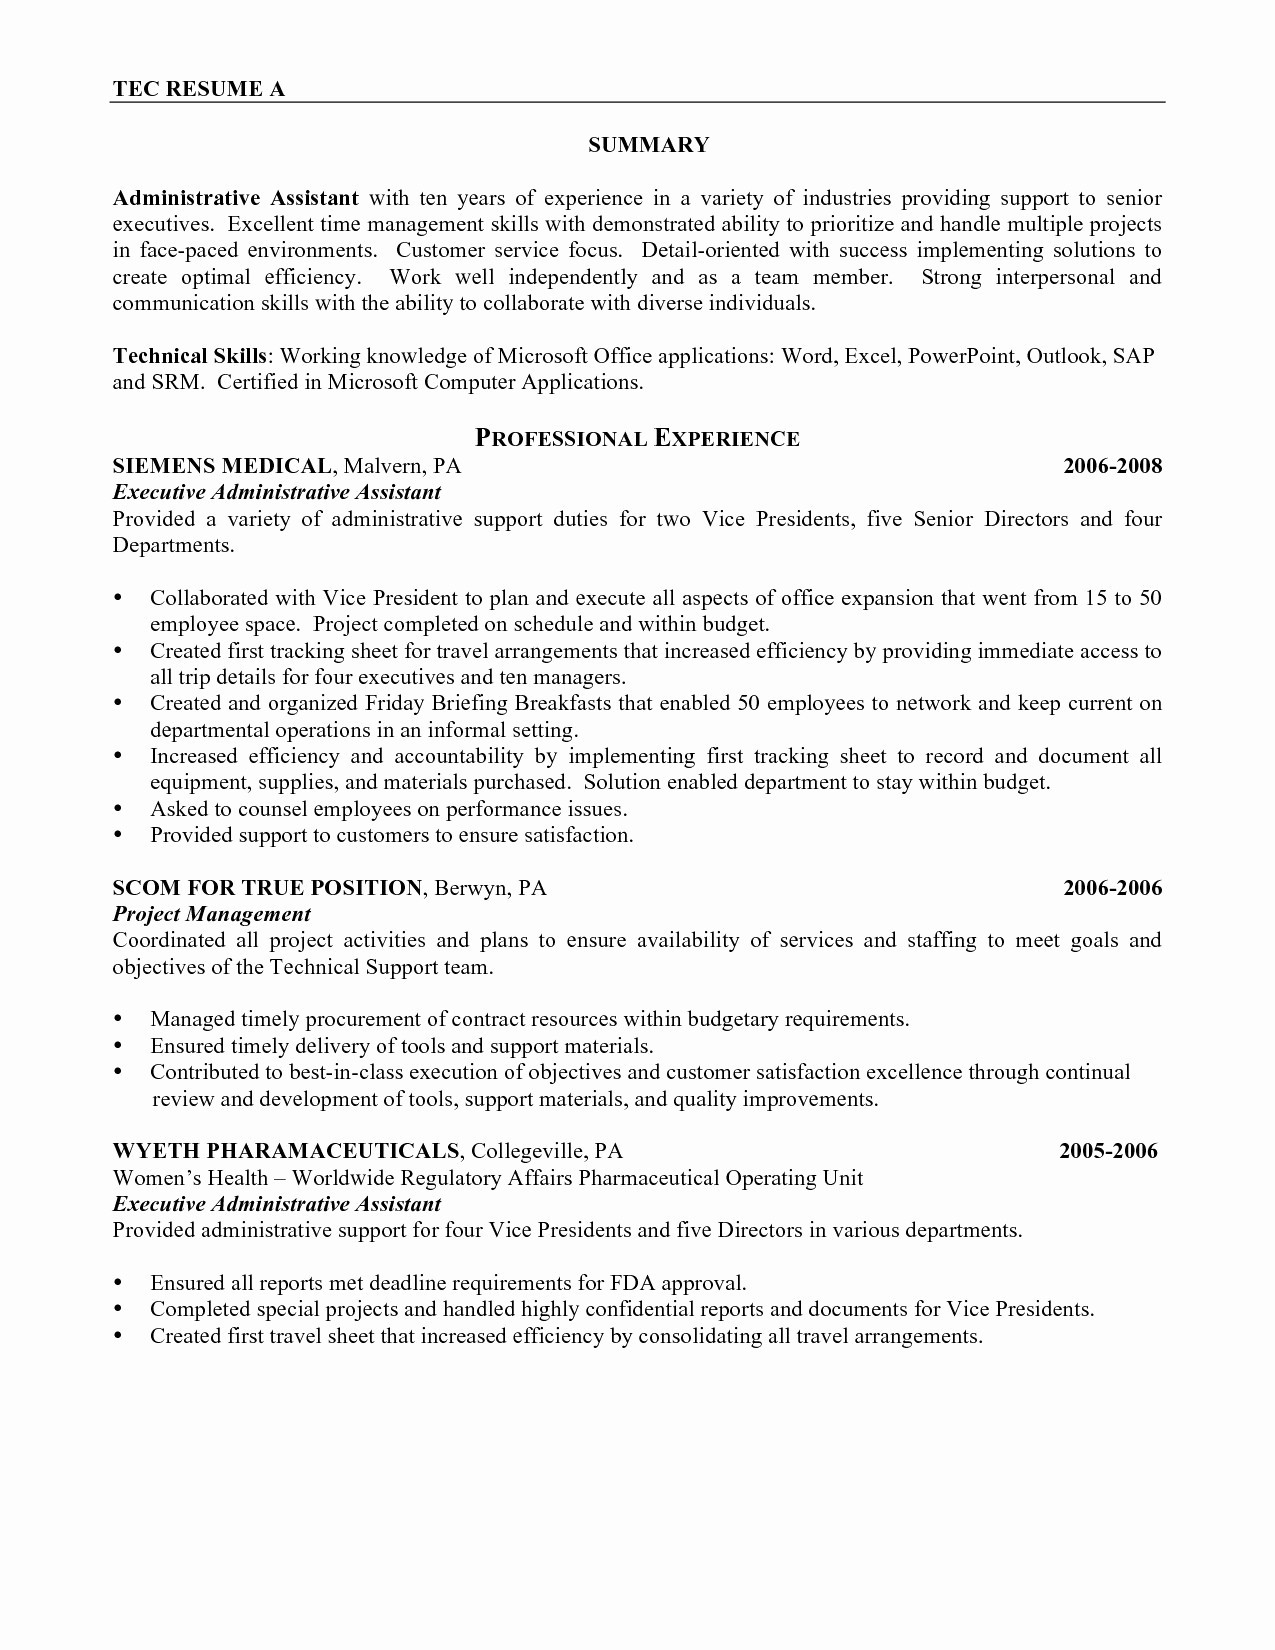 Service Industry Resume Examples - Cover Letter Graphic Designer New Best Resume Samples New Resume